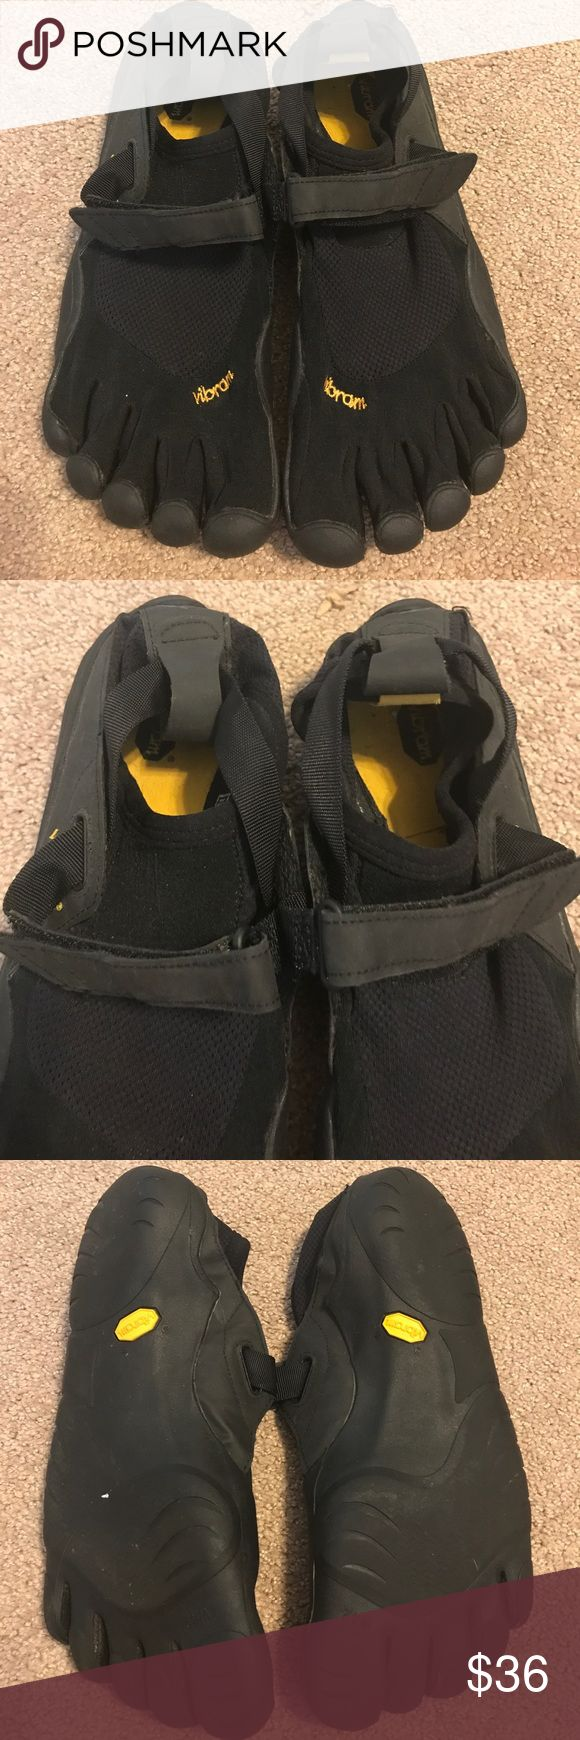 Vibram toe shoes with Velcro strap Barely used, some wear on inside heels. Size 42W (W 10) Vibram Shoes Athletic Shoes